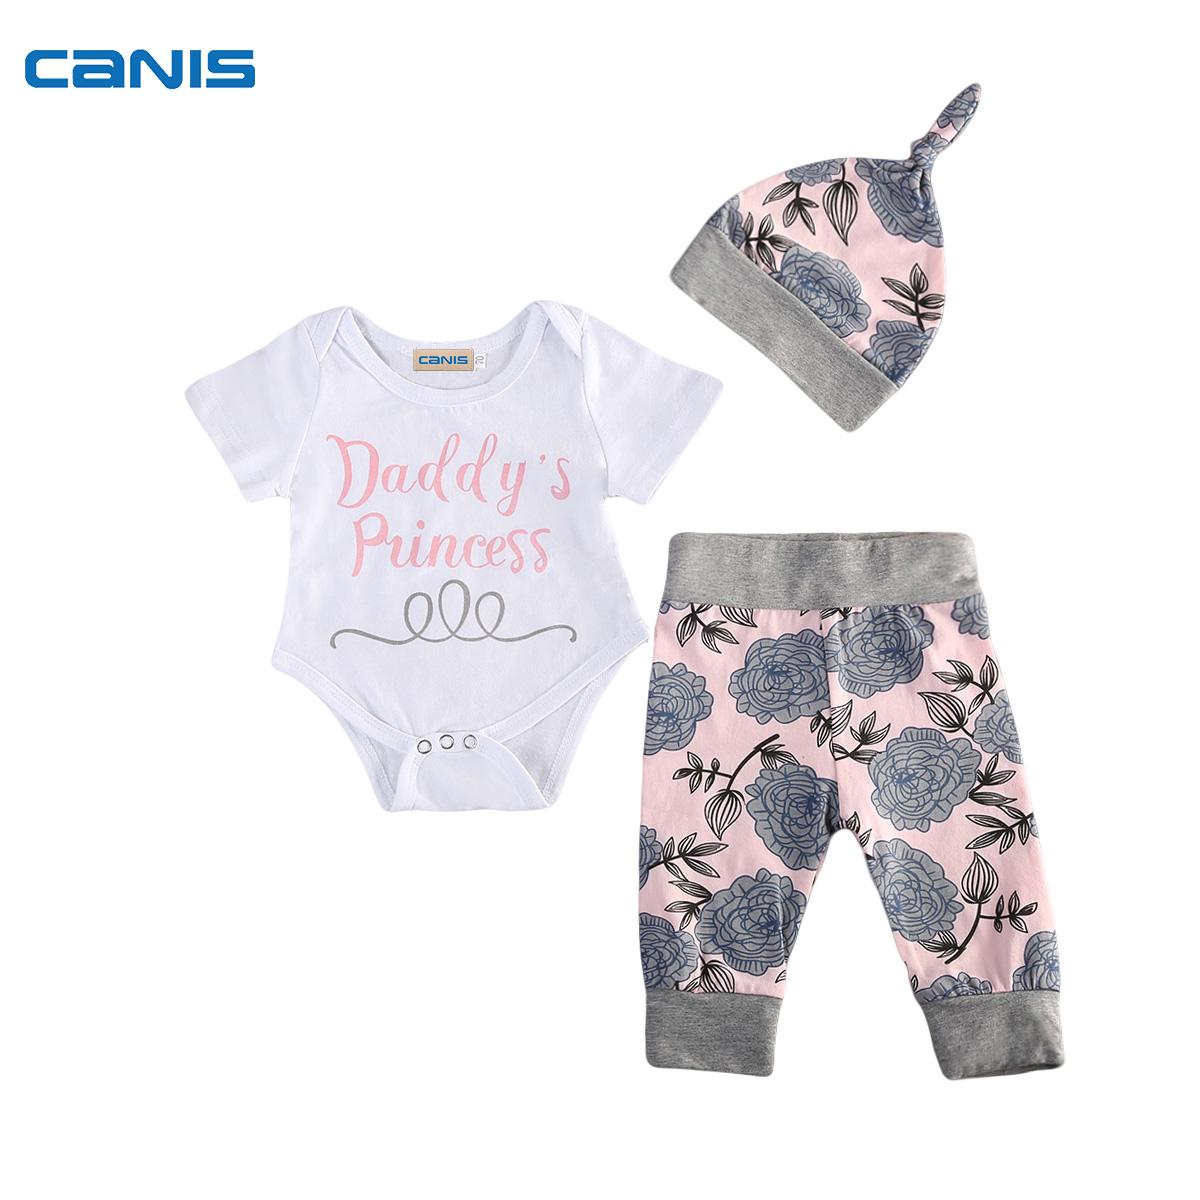 Lovely Toddler Infant Baby Boy Girl Rompers Outfits Daddys Princess ...